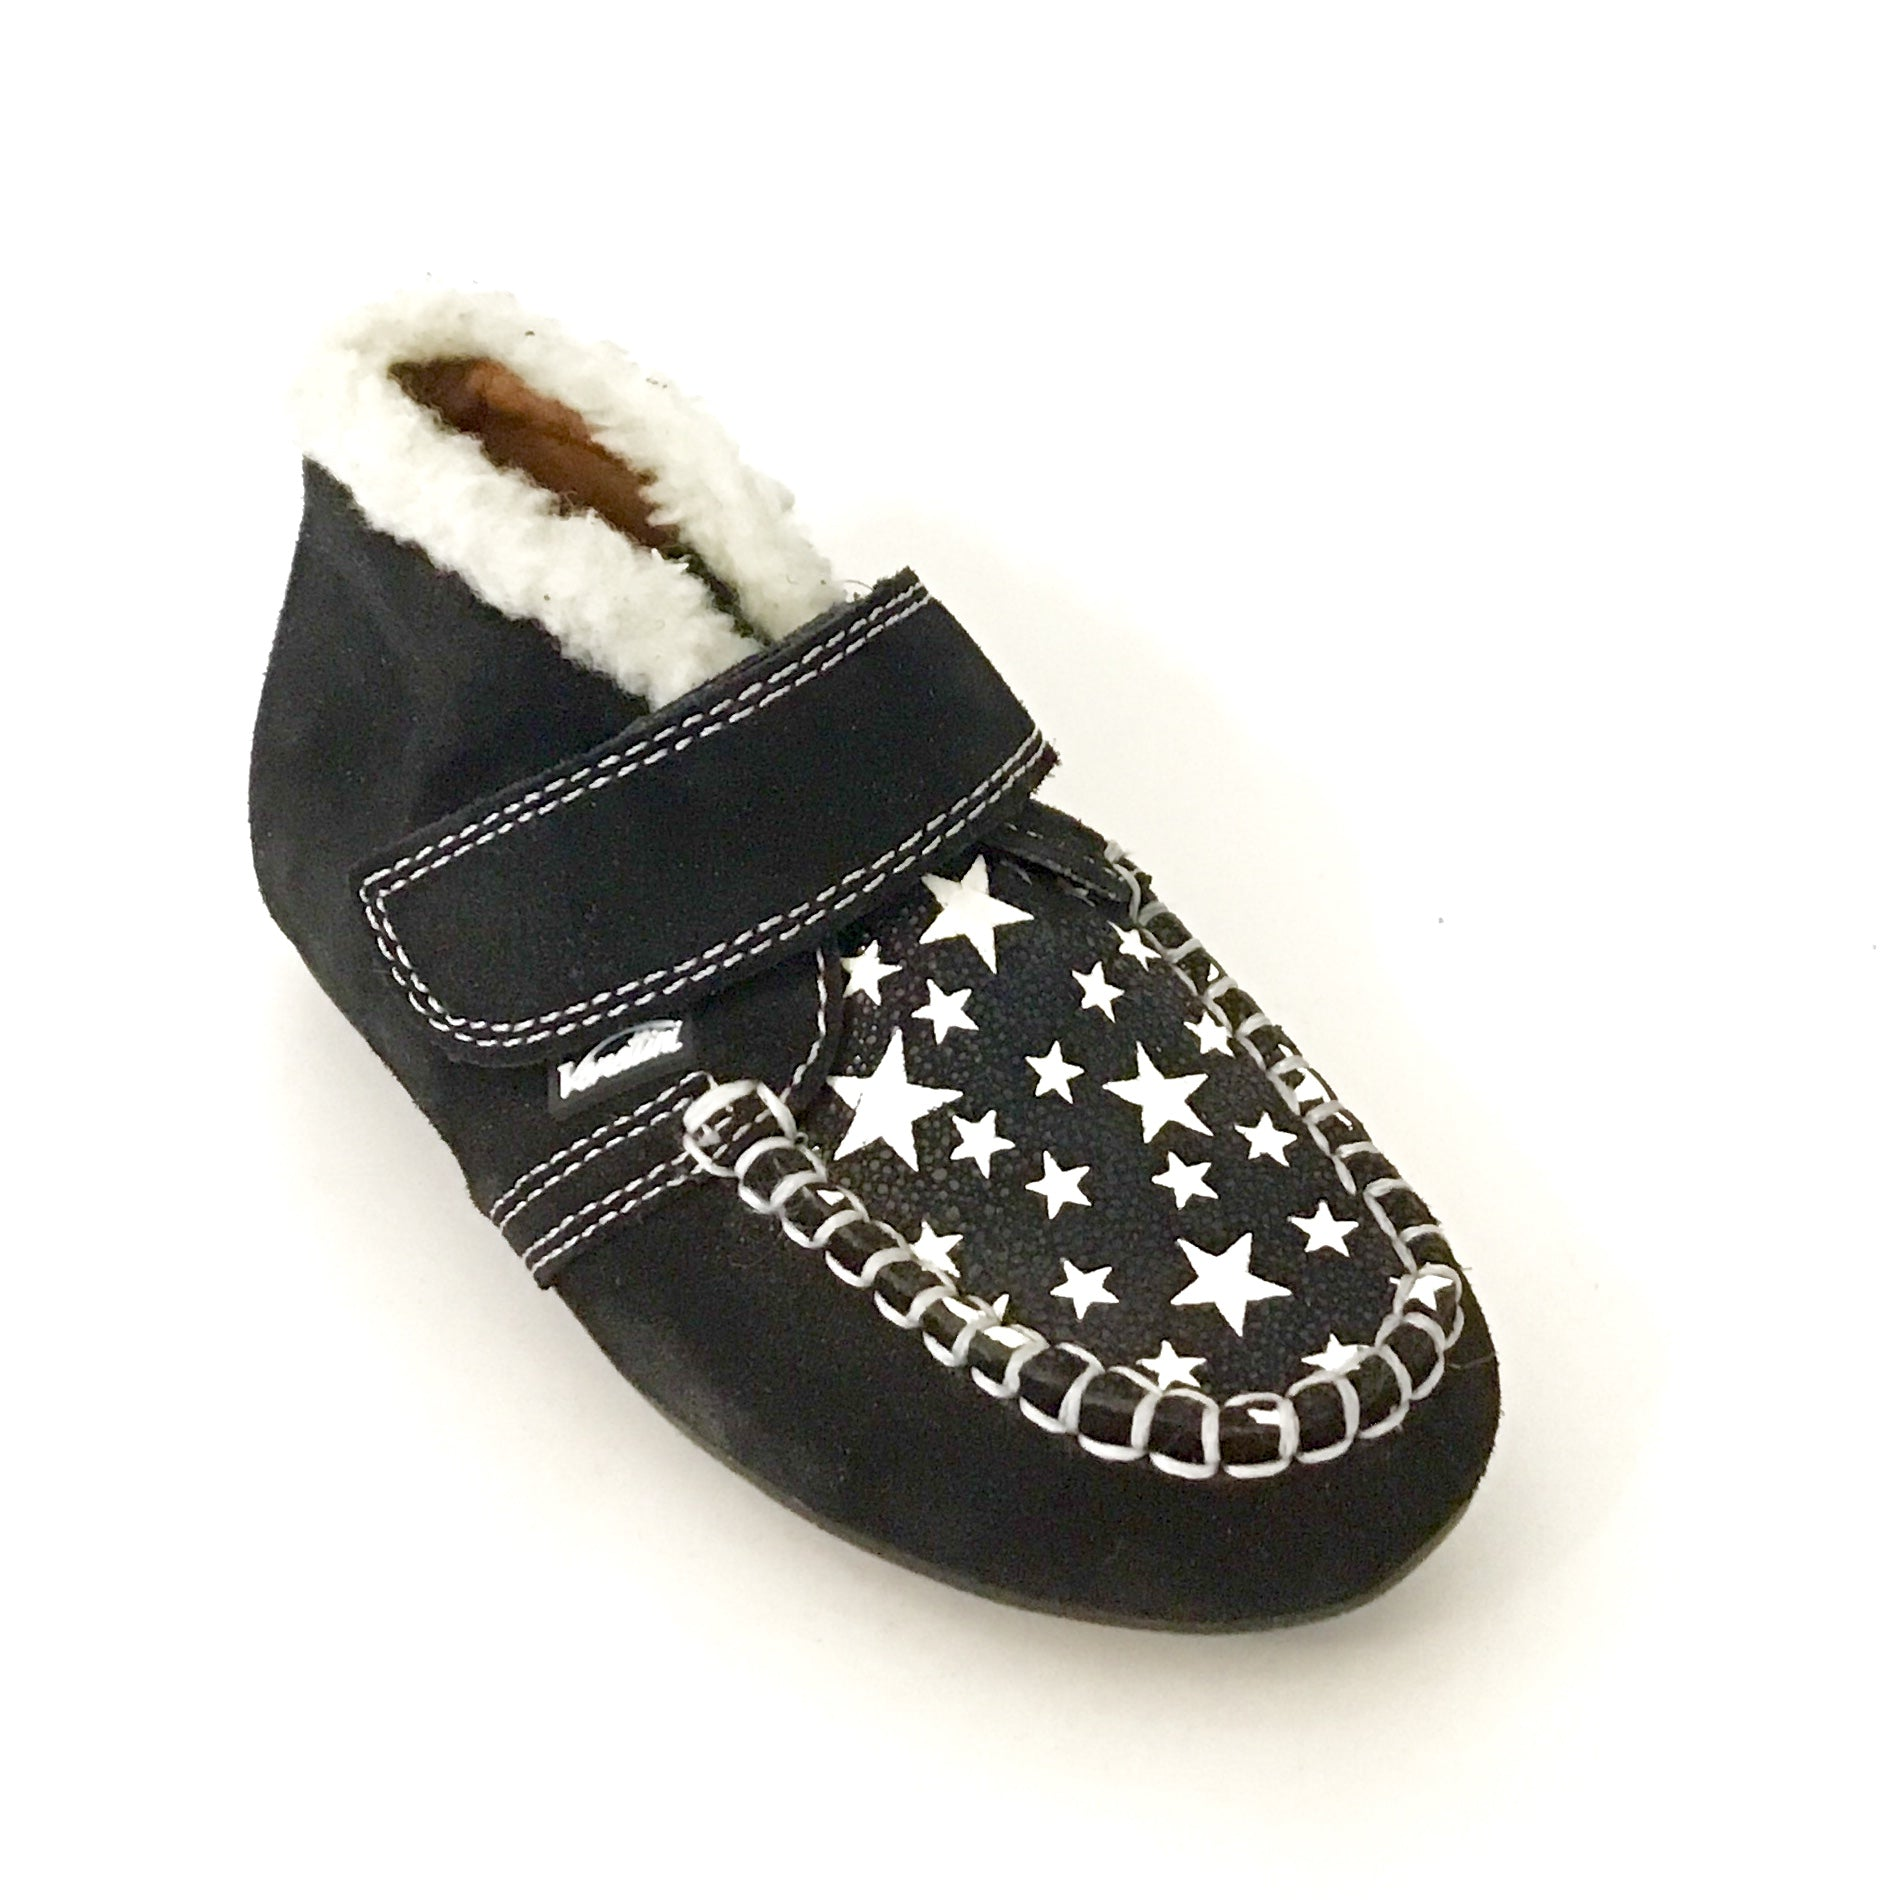 Venettini Black Suede Velcro Shoe with Stars